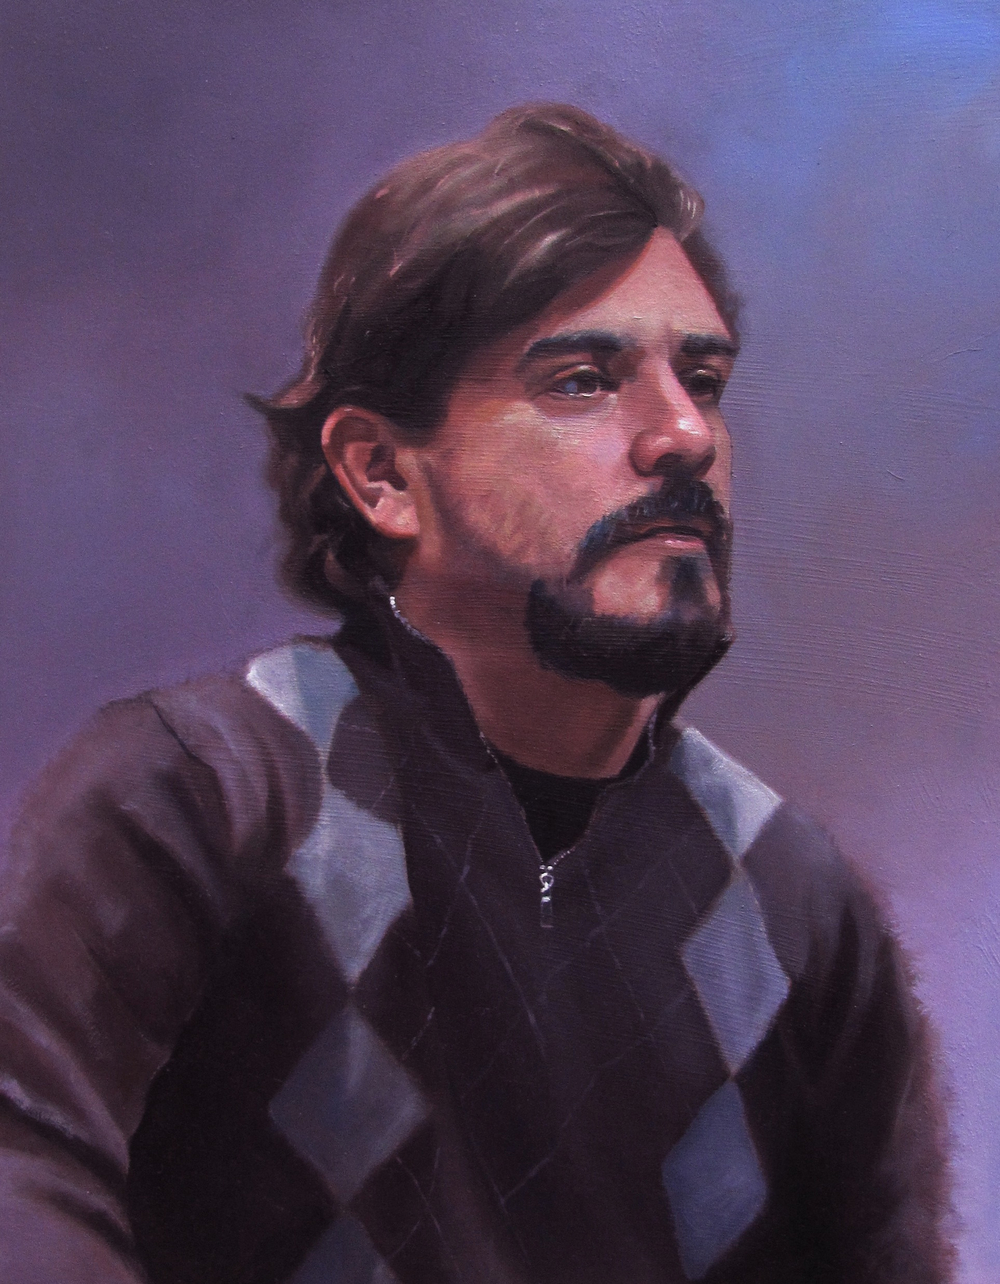 Scott_kiche_profile _of_artist_Friend_Aaron _Westerberg_11x14_oil_on_gesso_board_1500.jpg